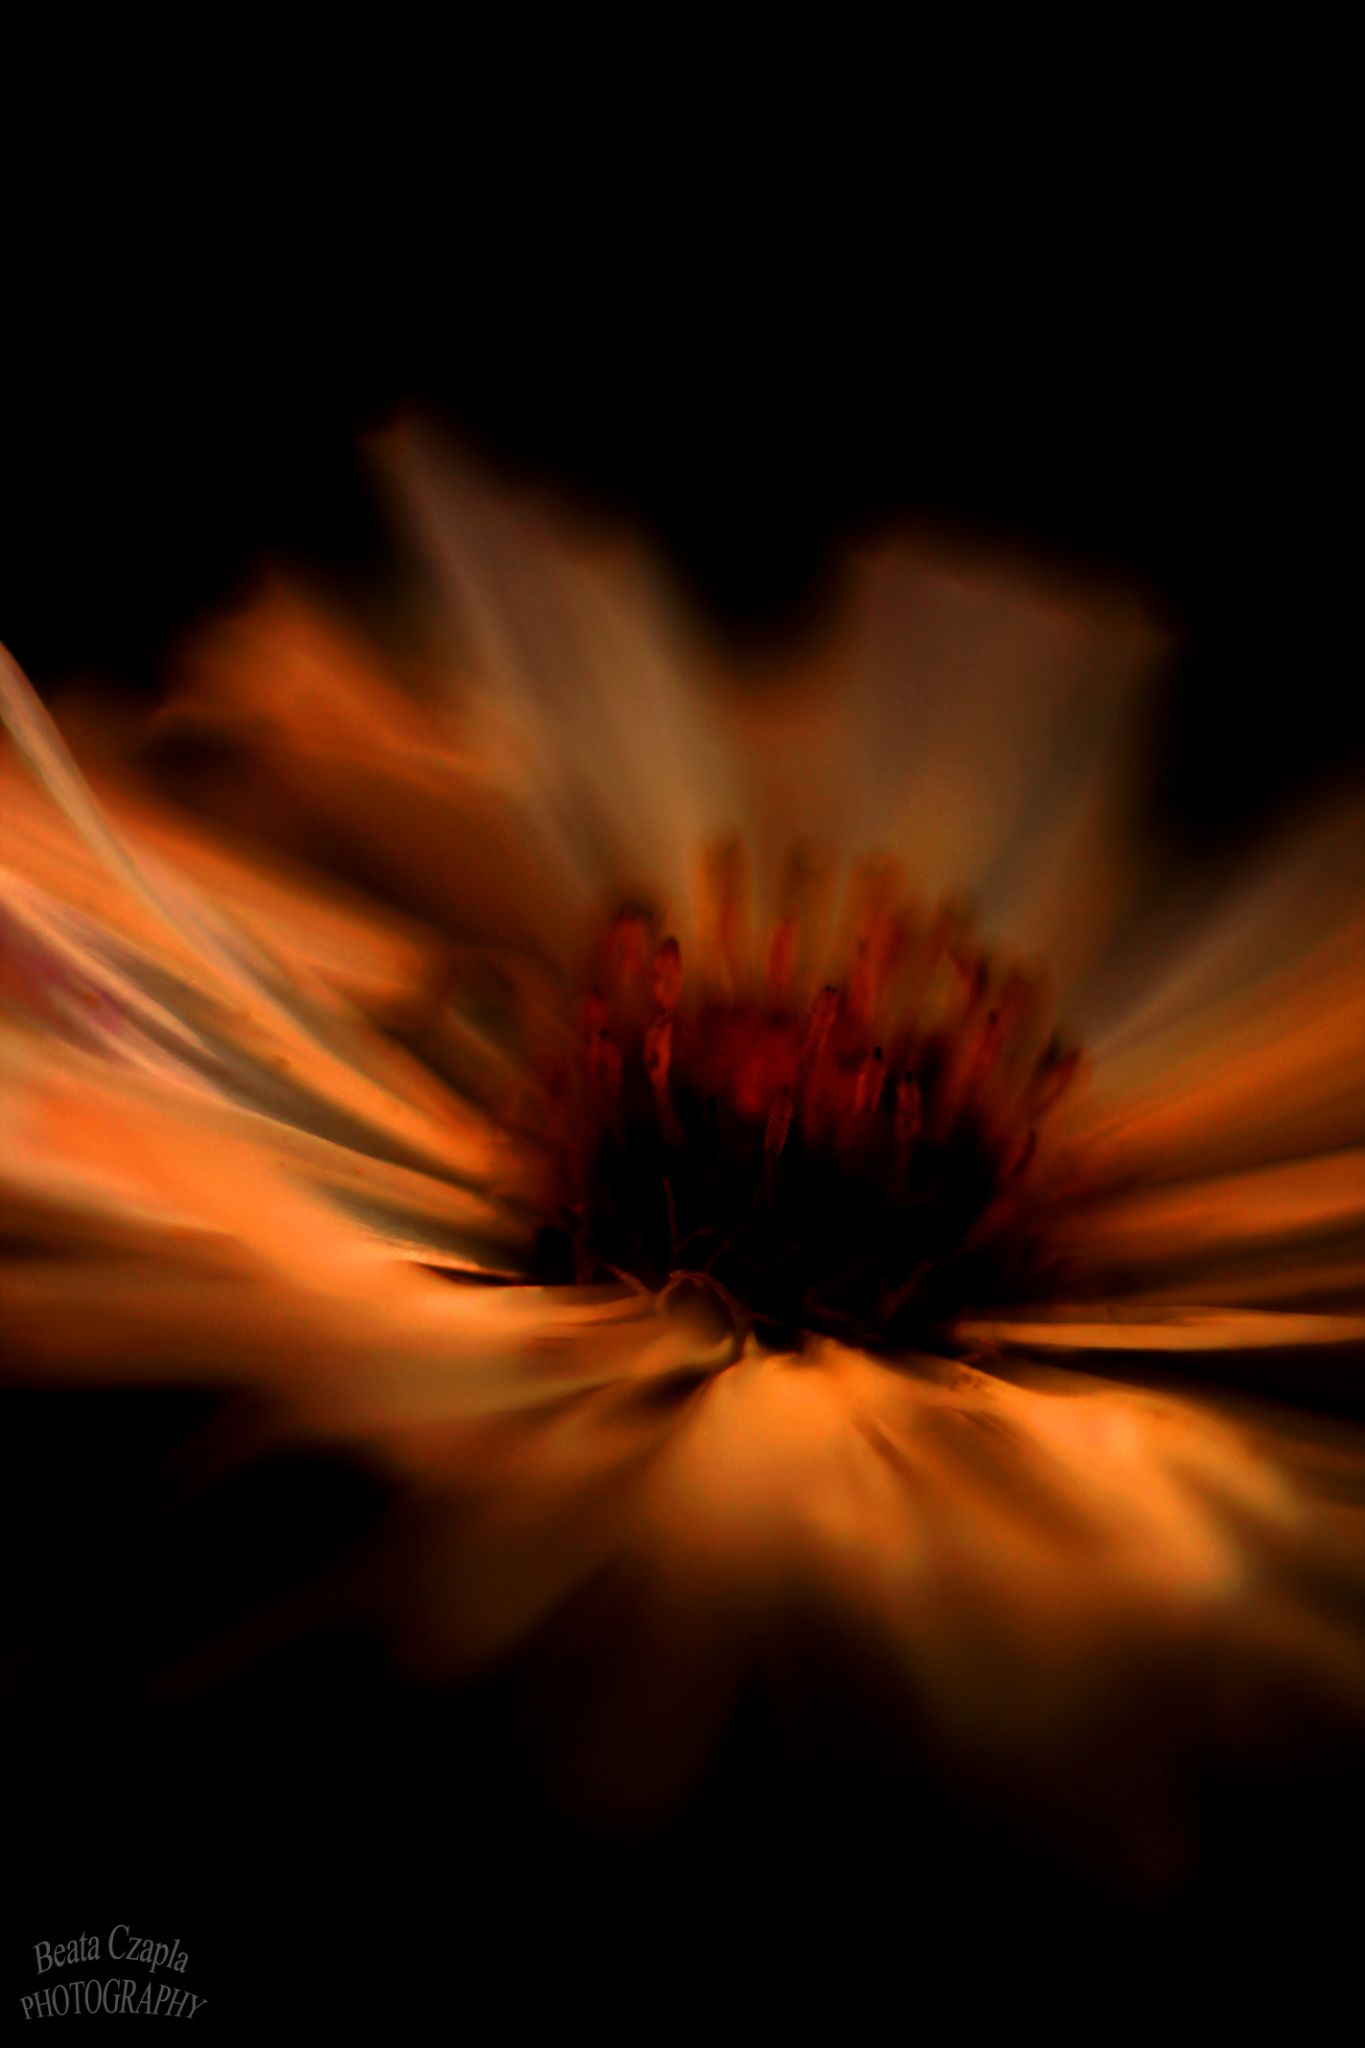 Burning Flowers by Beata Czapla